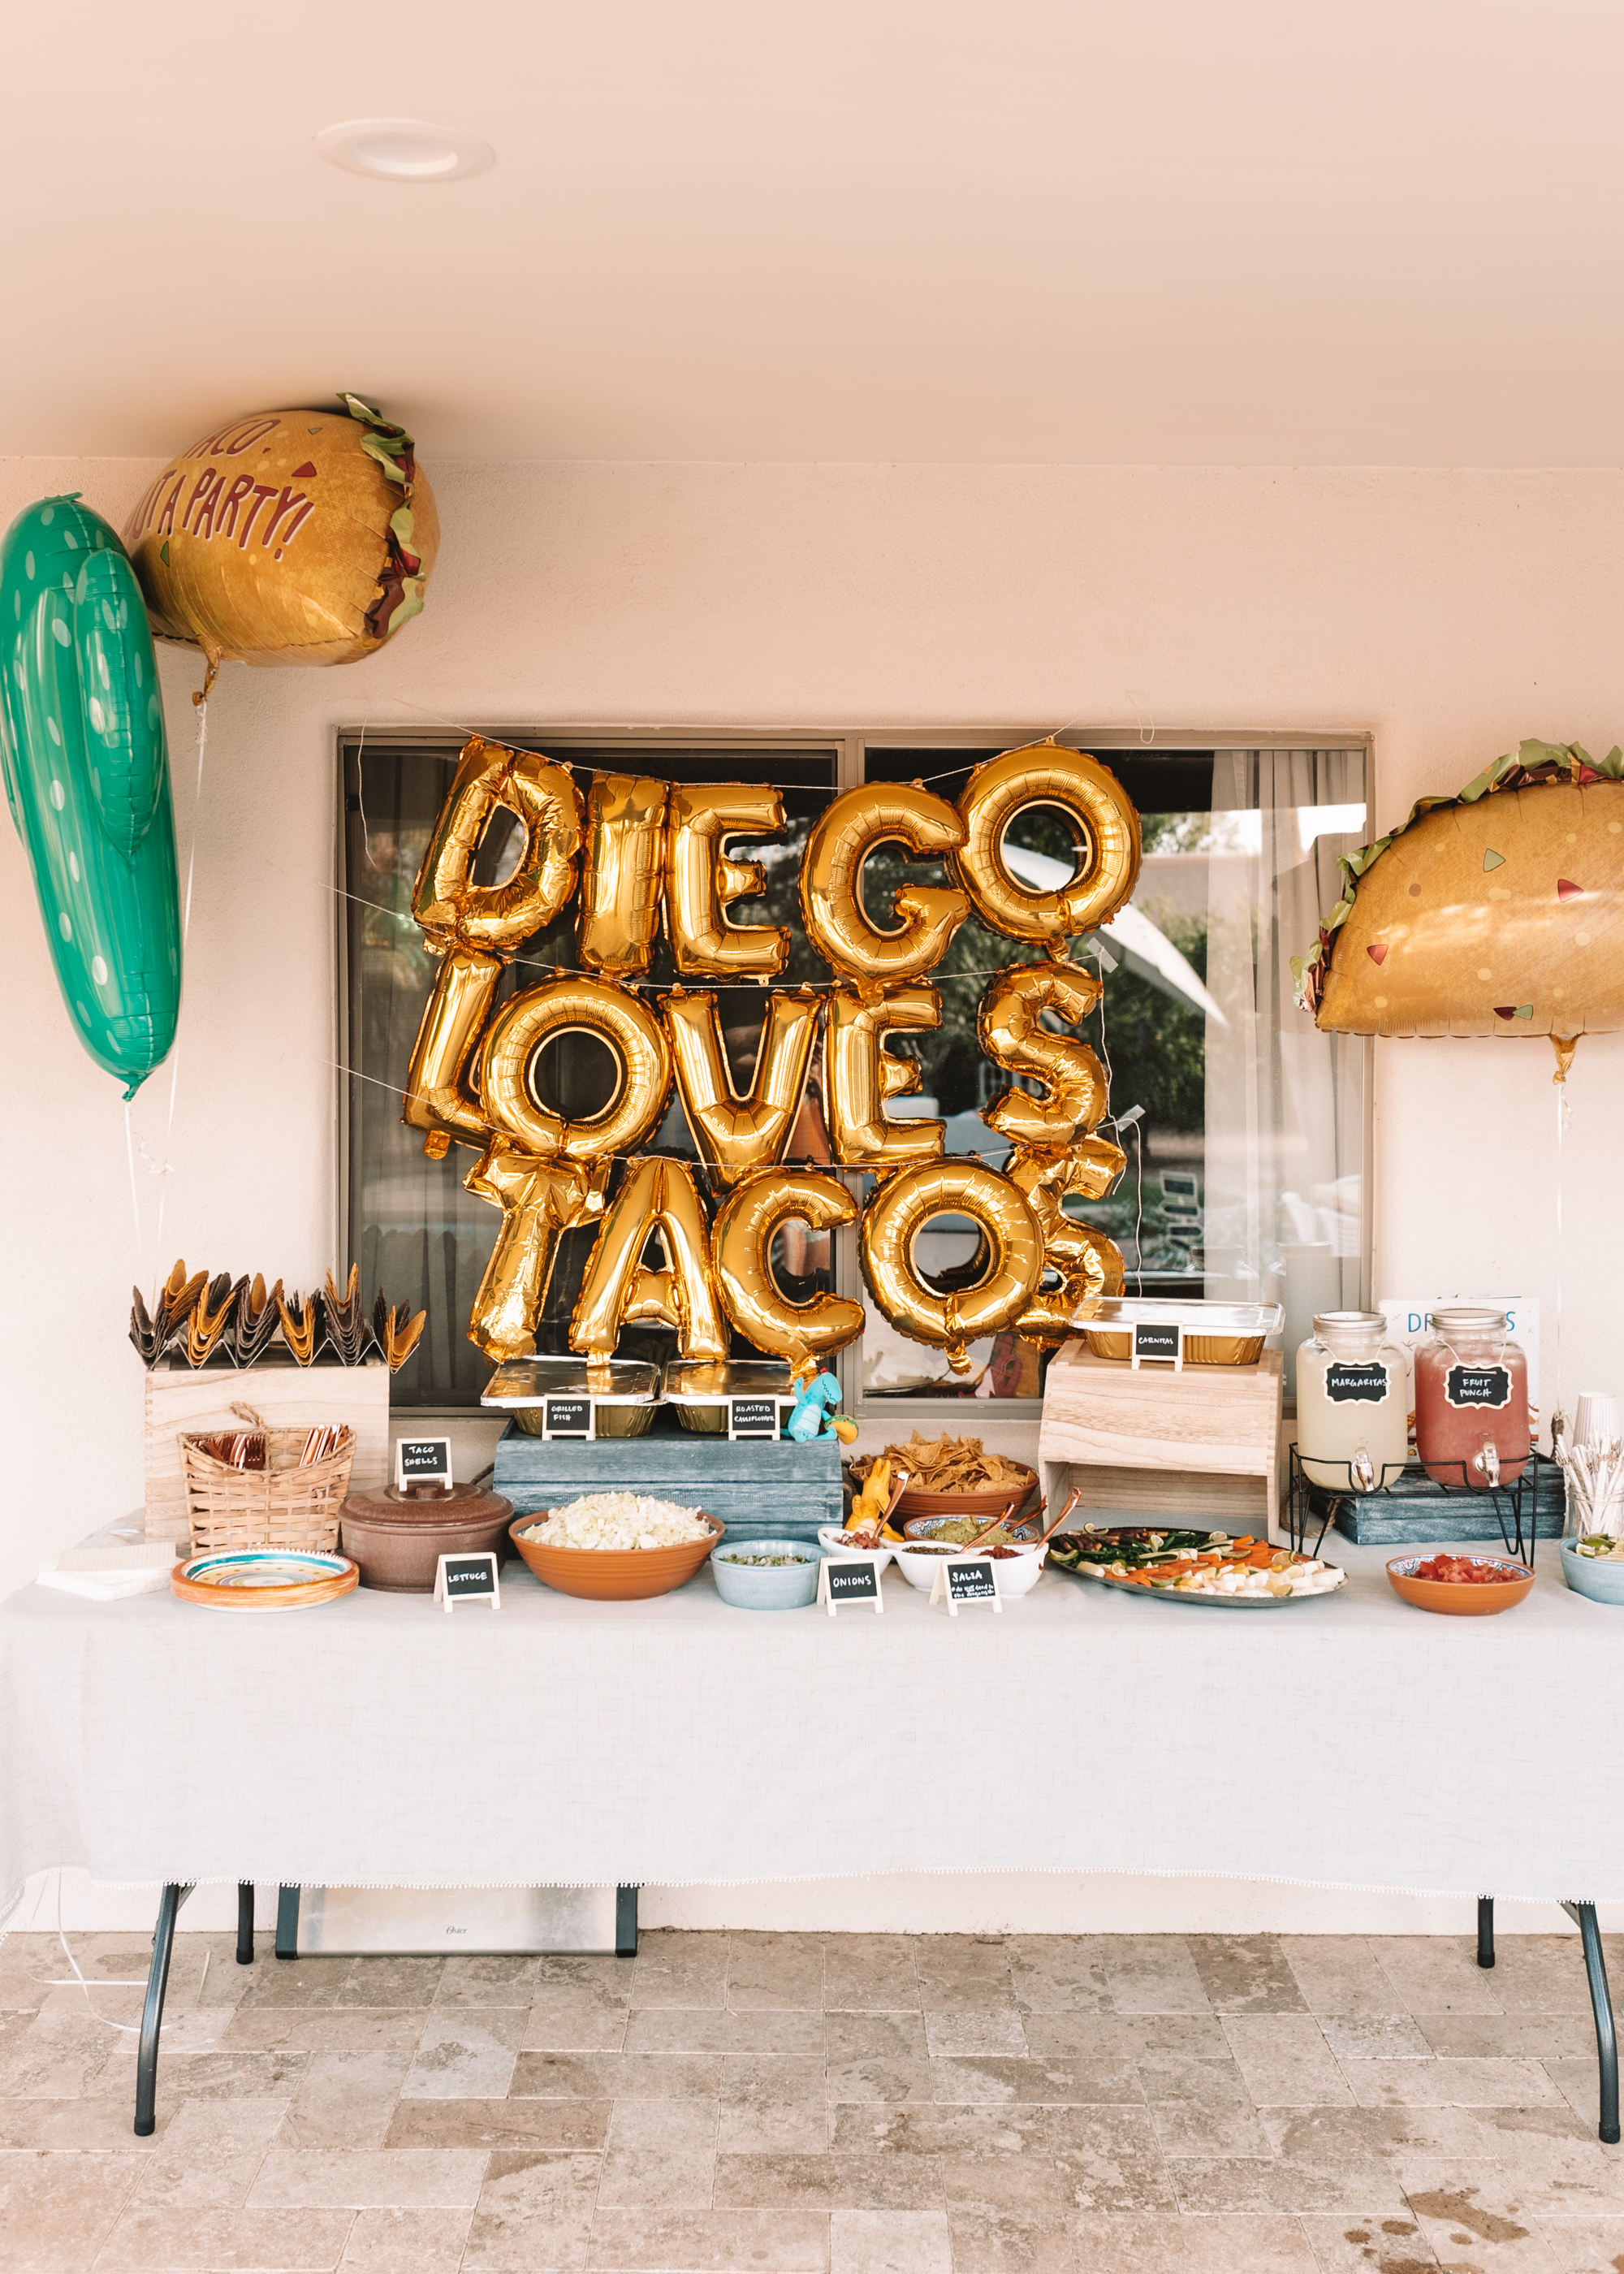 taco bar for a dragons love tacos birthday party.